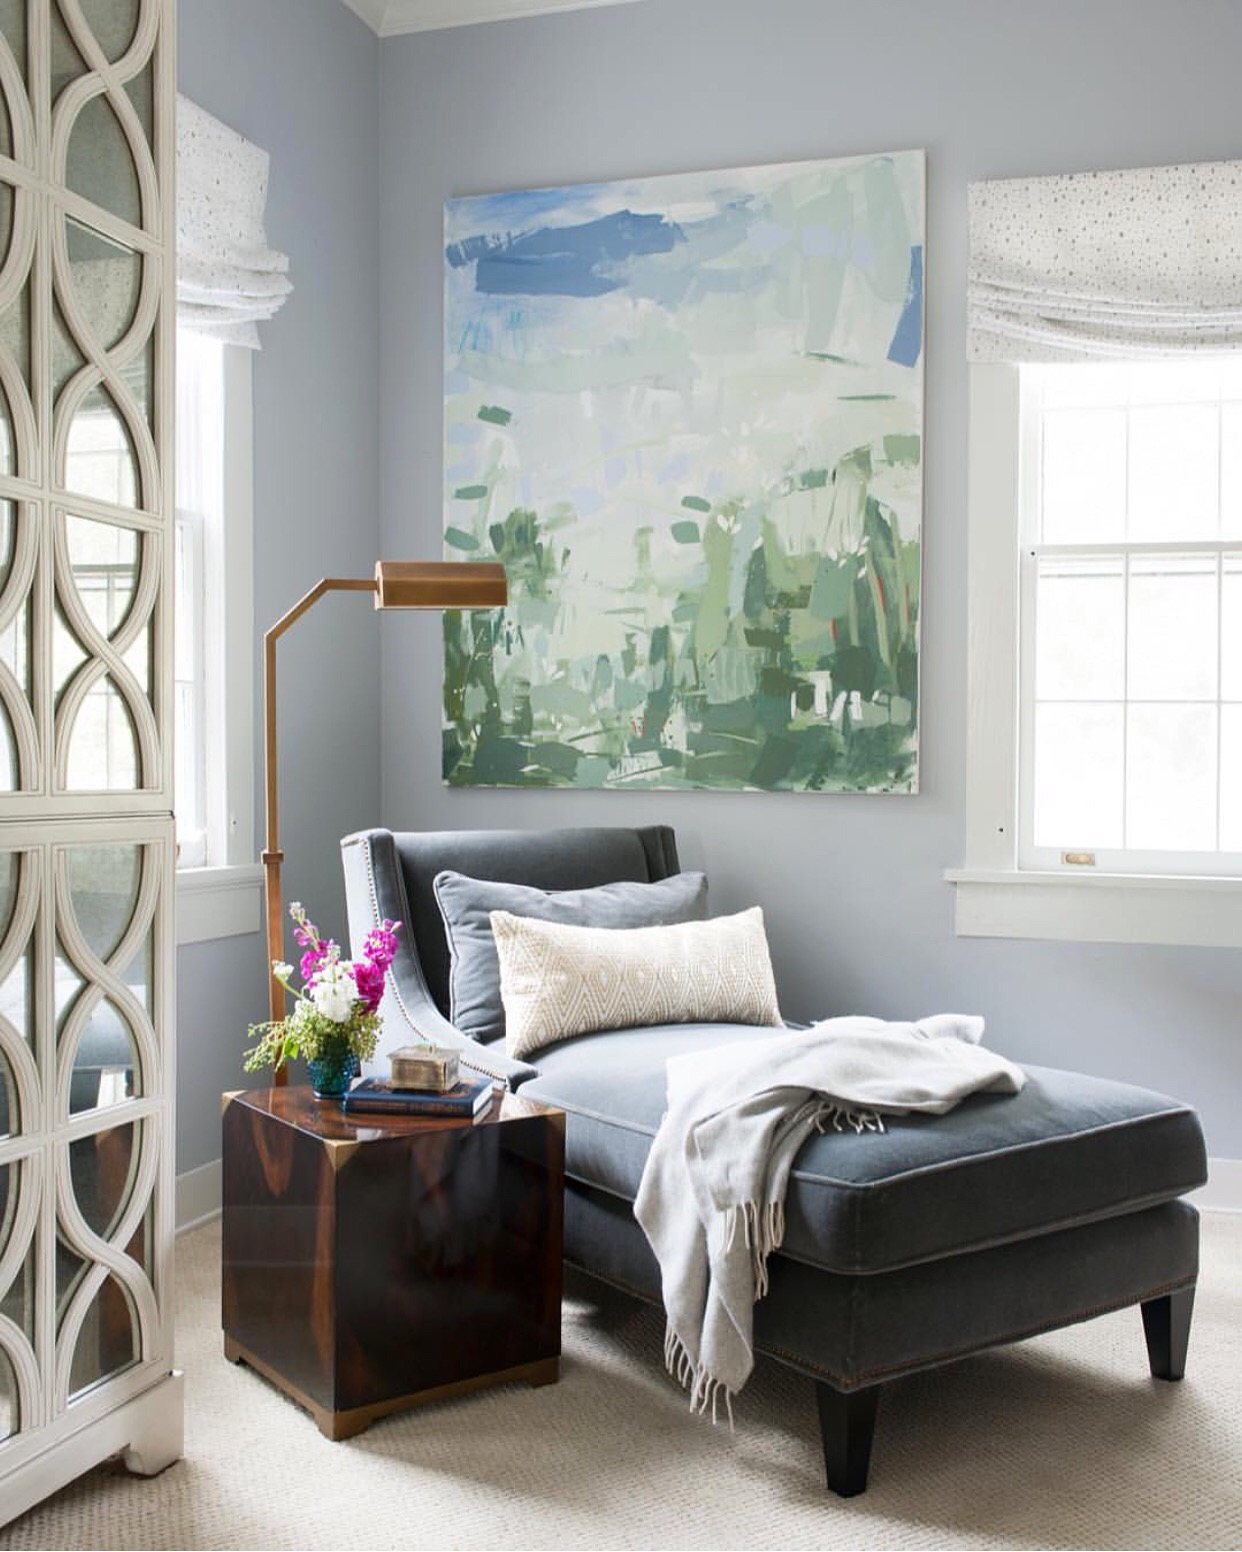 So fun seeing my painting in this beautiful space by Gordon Dunning in Atlanta Home Magazine!